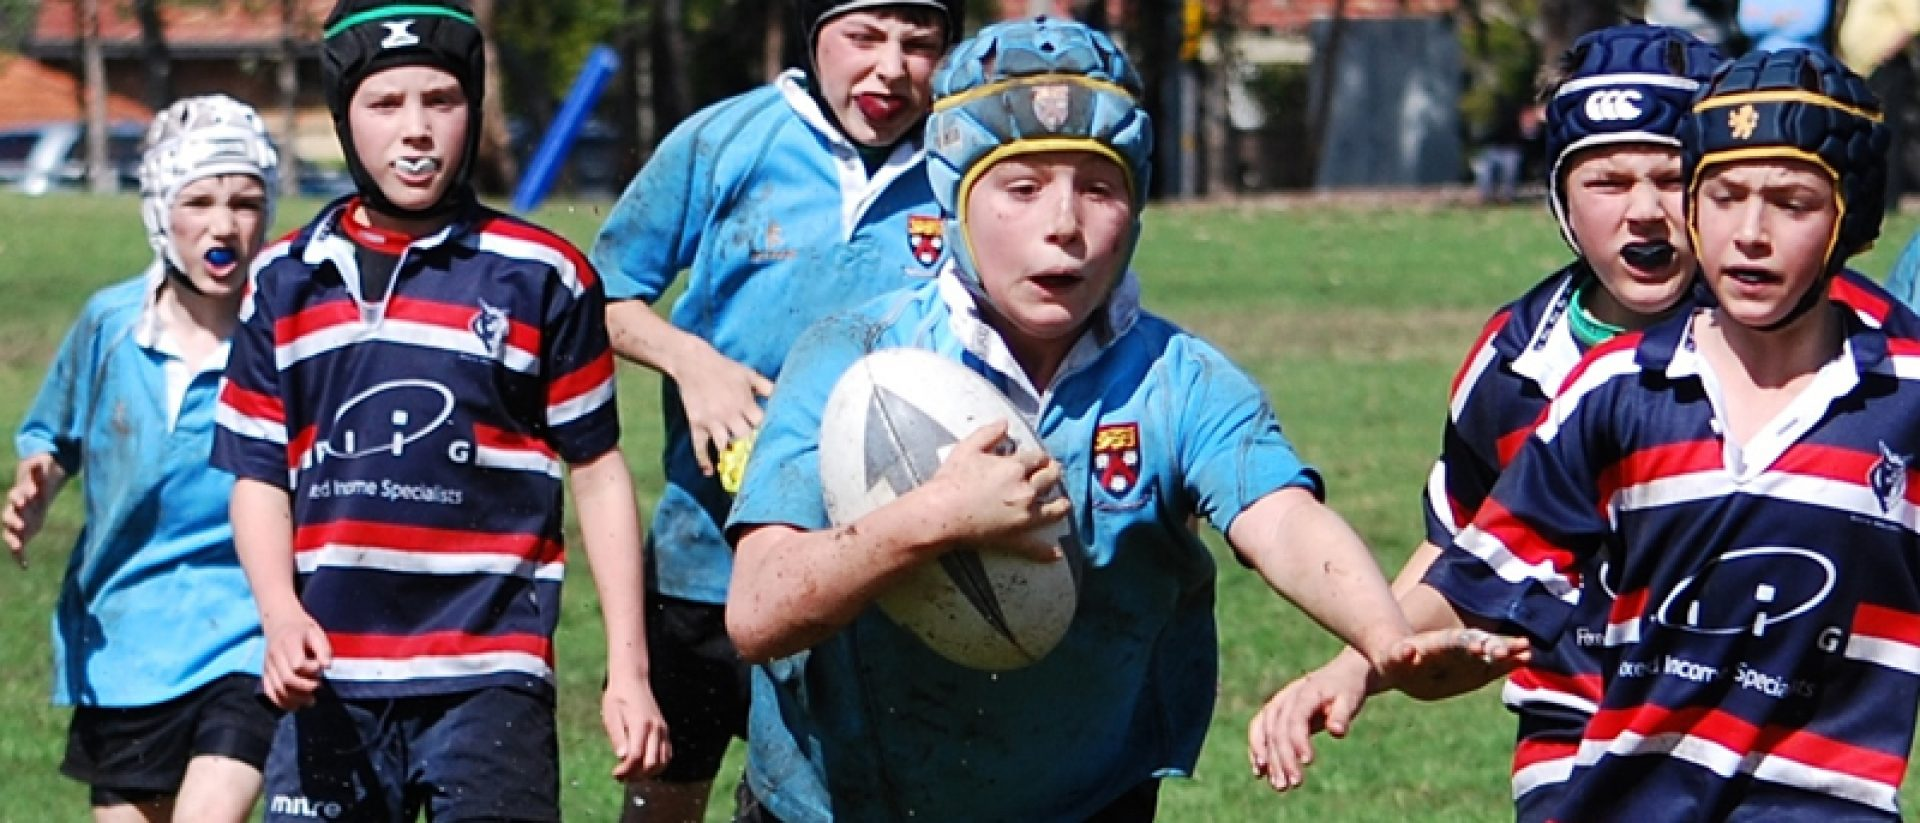 Sydney Junior Rugby Union